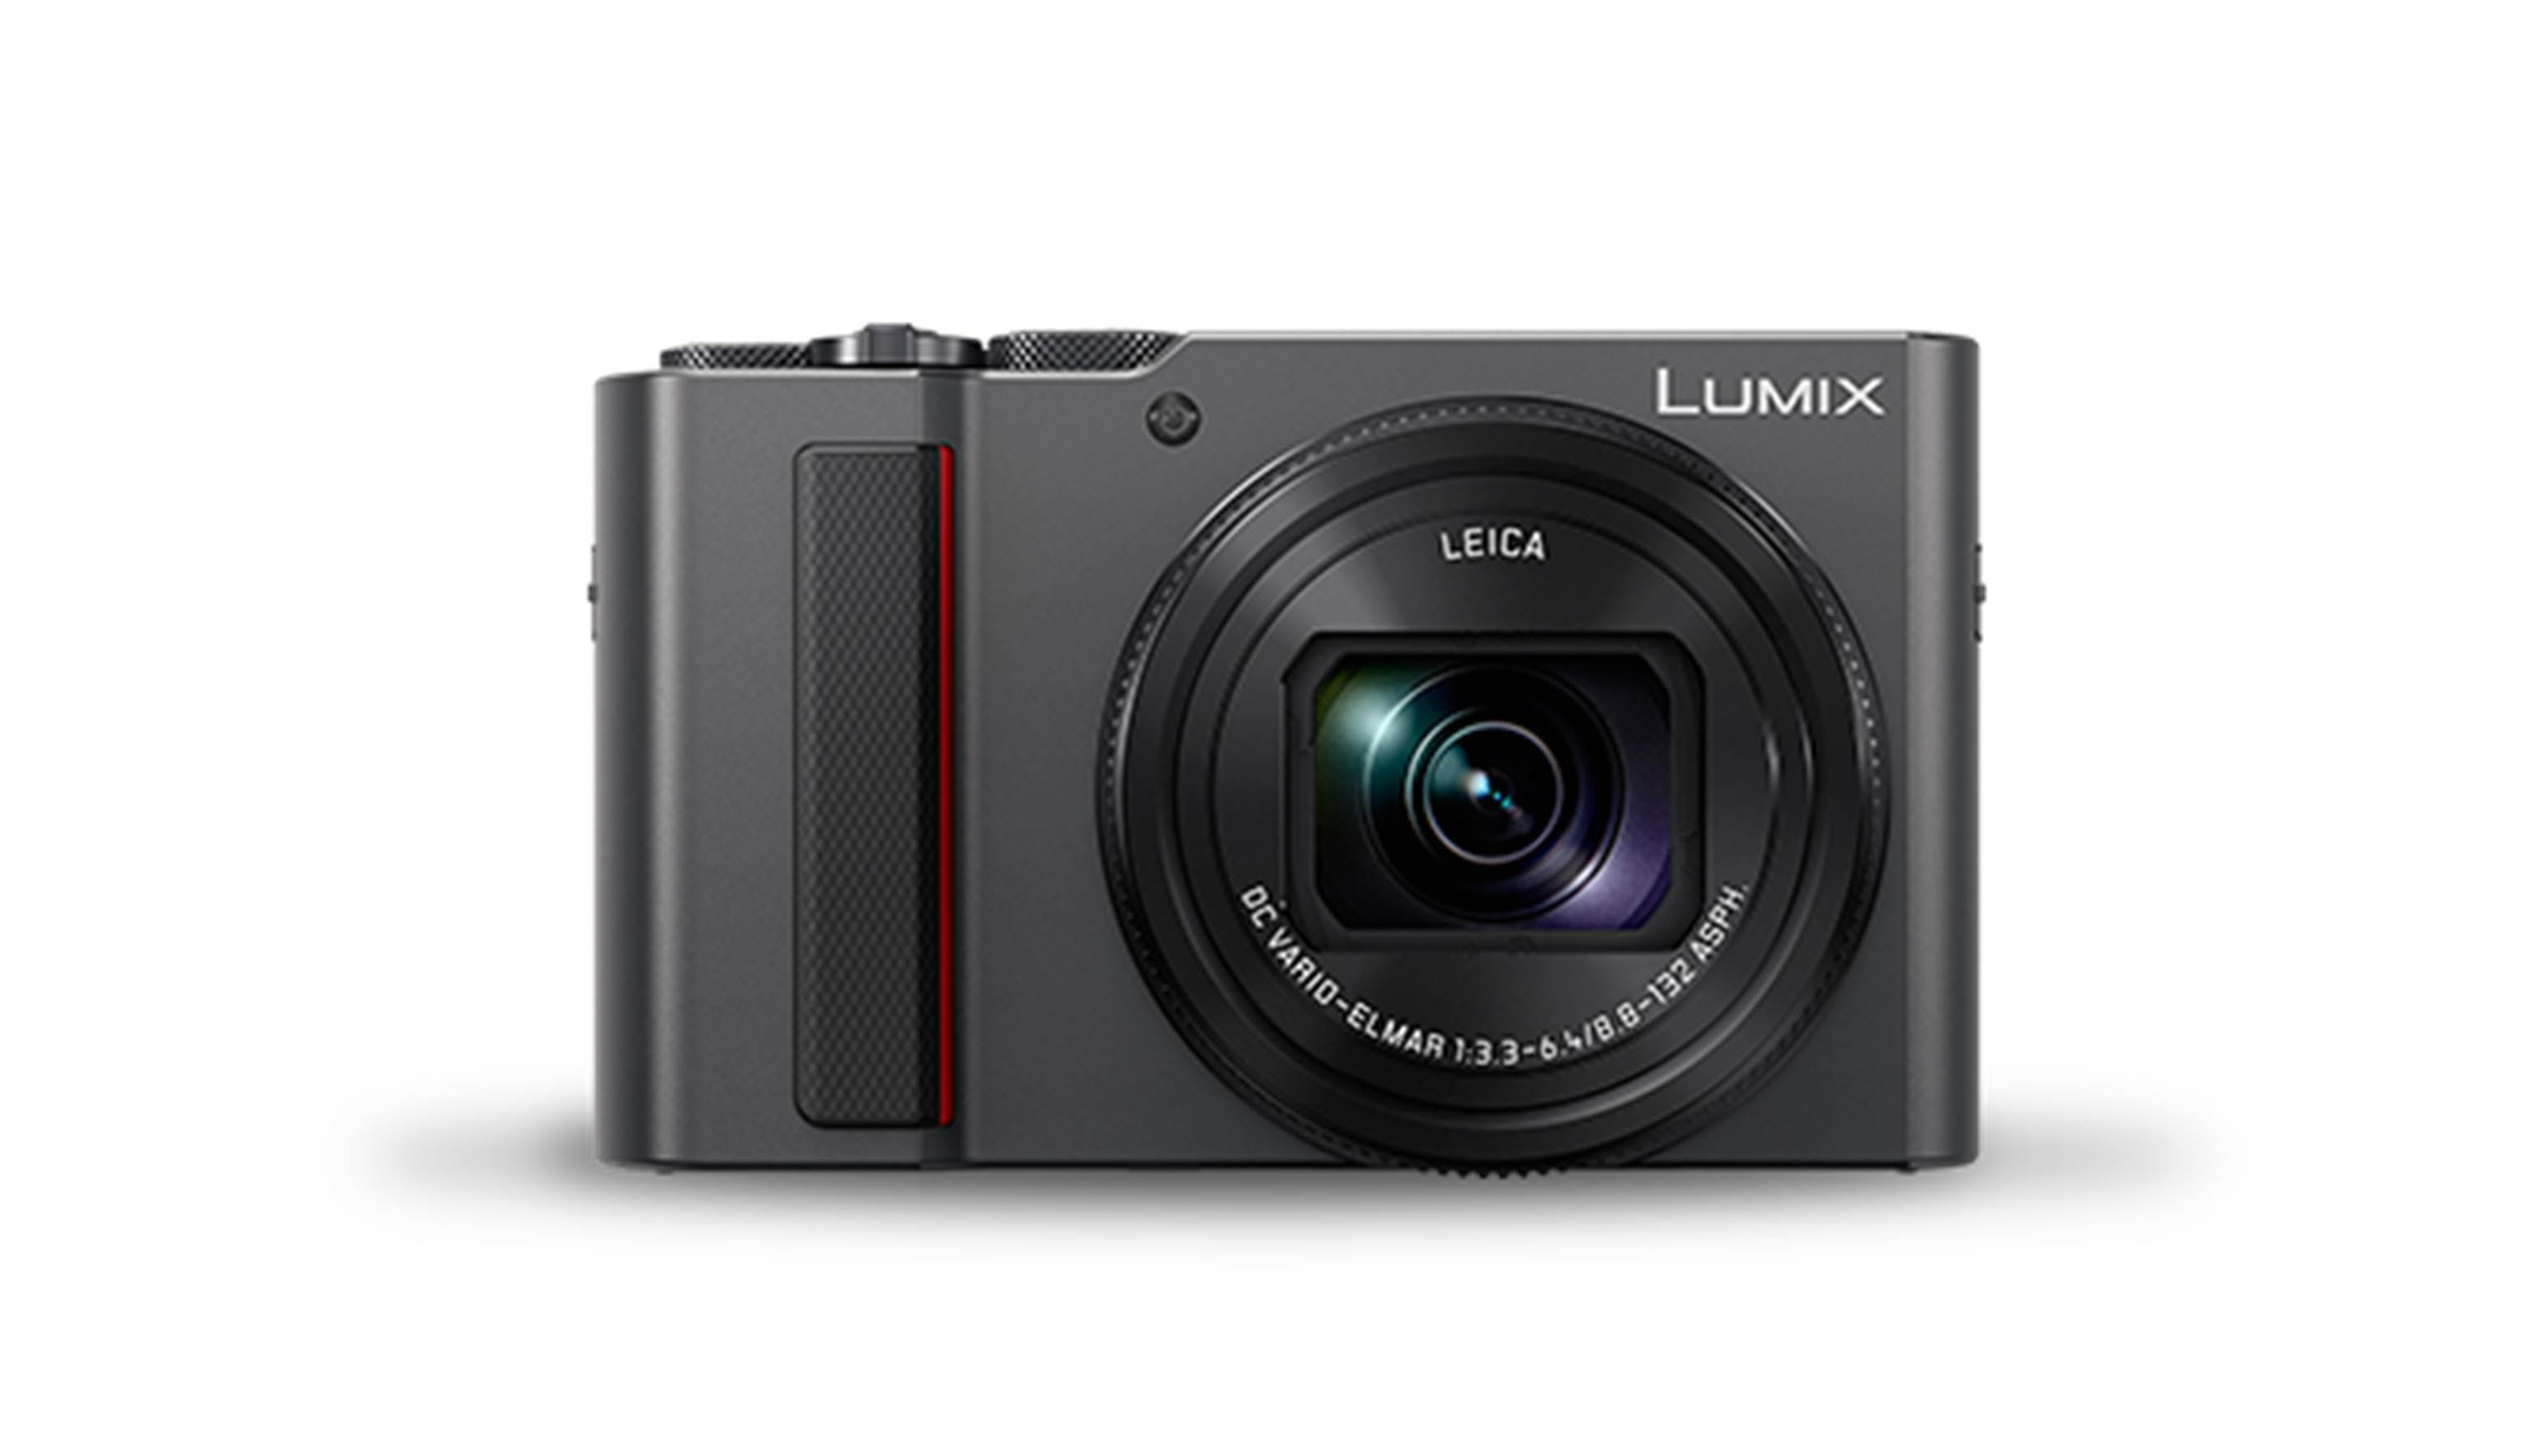 Panasonic DC-TZ220GA-K Lumix Digital Camera - Black